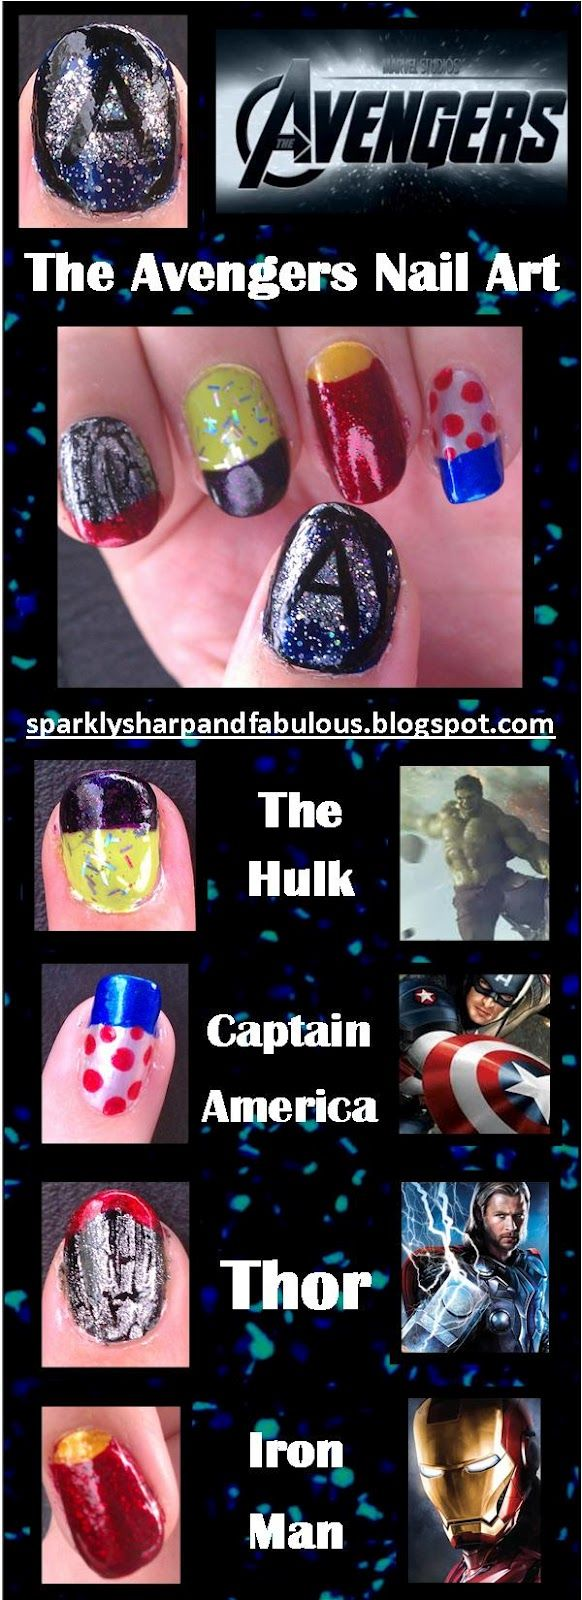 The Sparkle Queen: Nail Art http://sparklysharpandfabulous.blogspot.com/p/nail-art.html